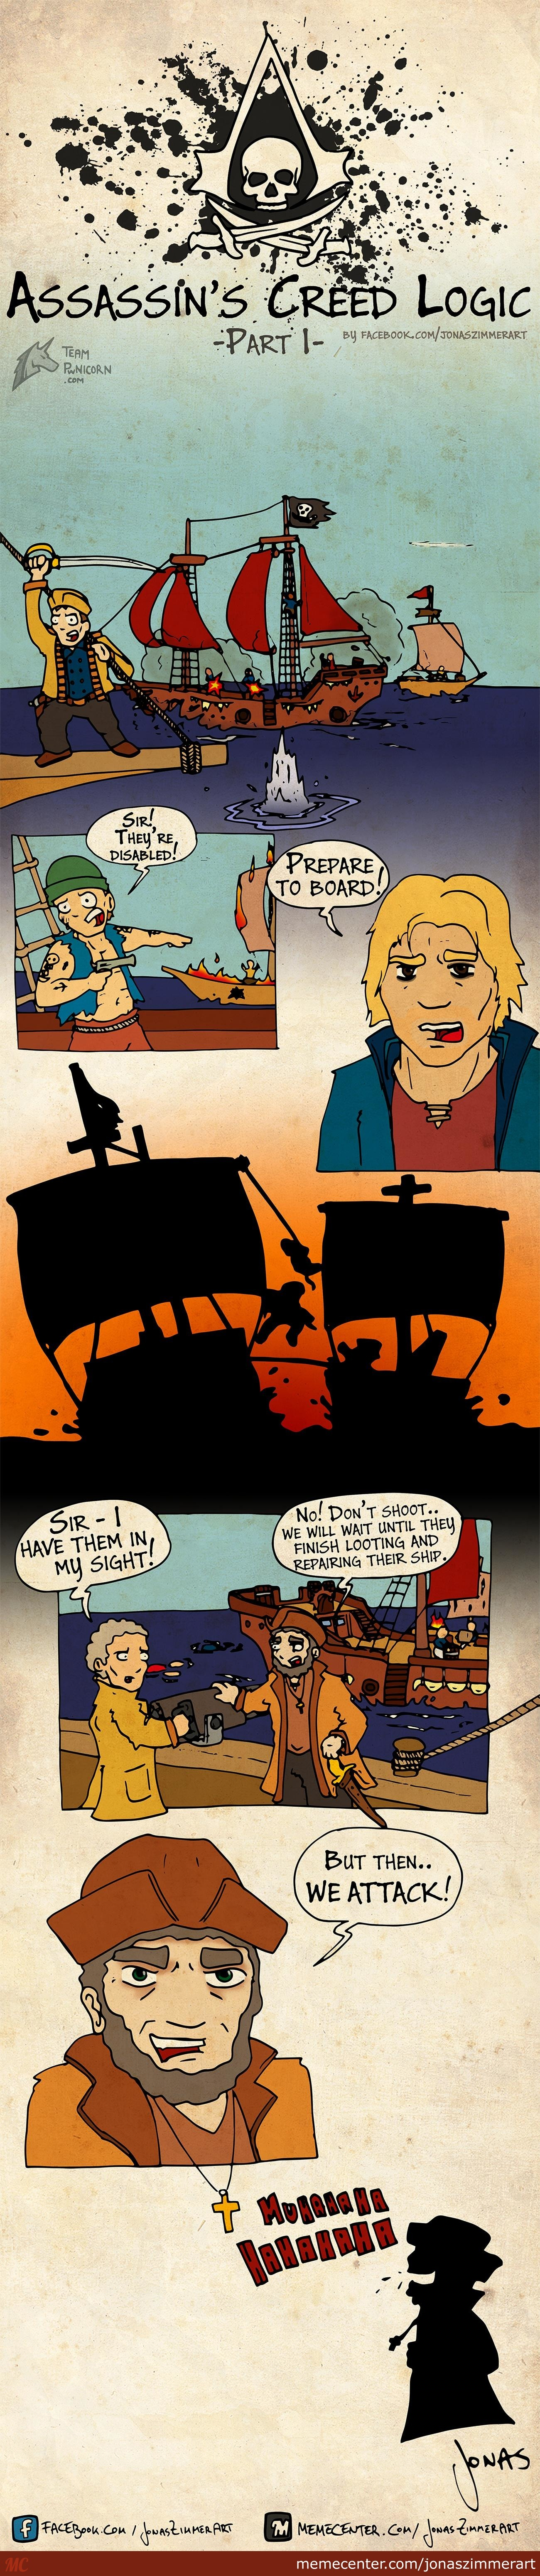 Assassin's Creed Iv Logic Part 1: Boarding